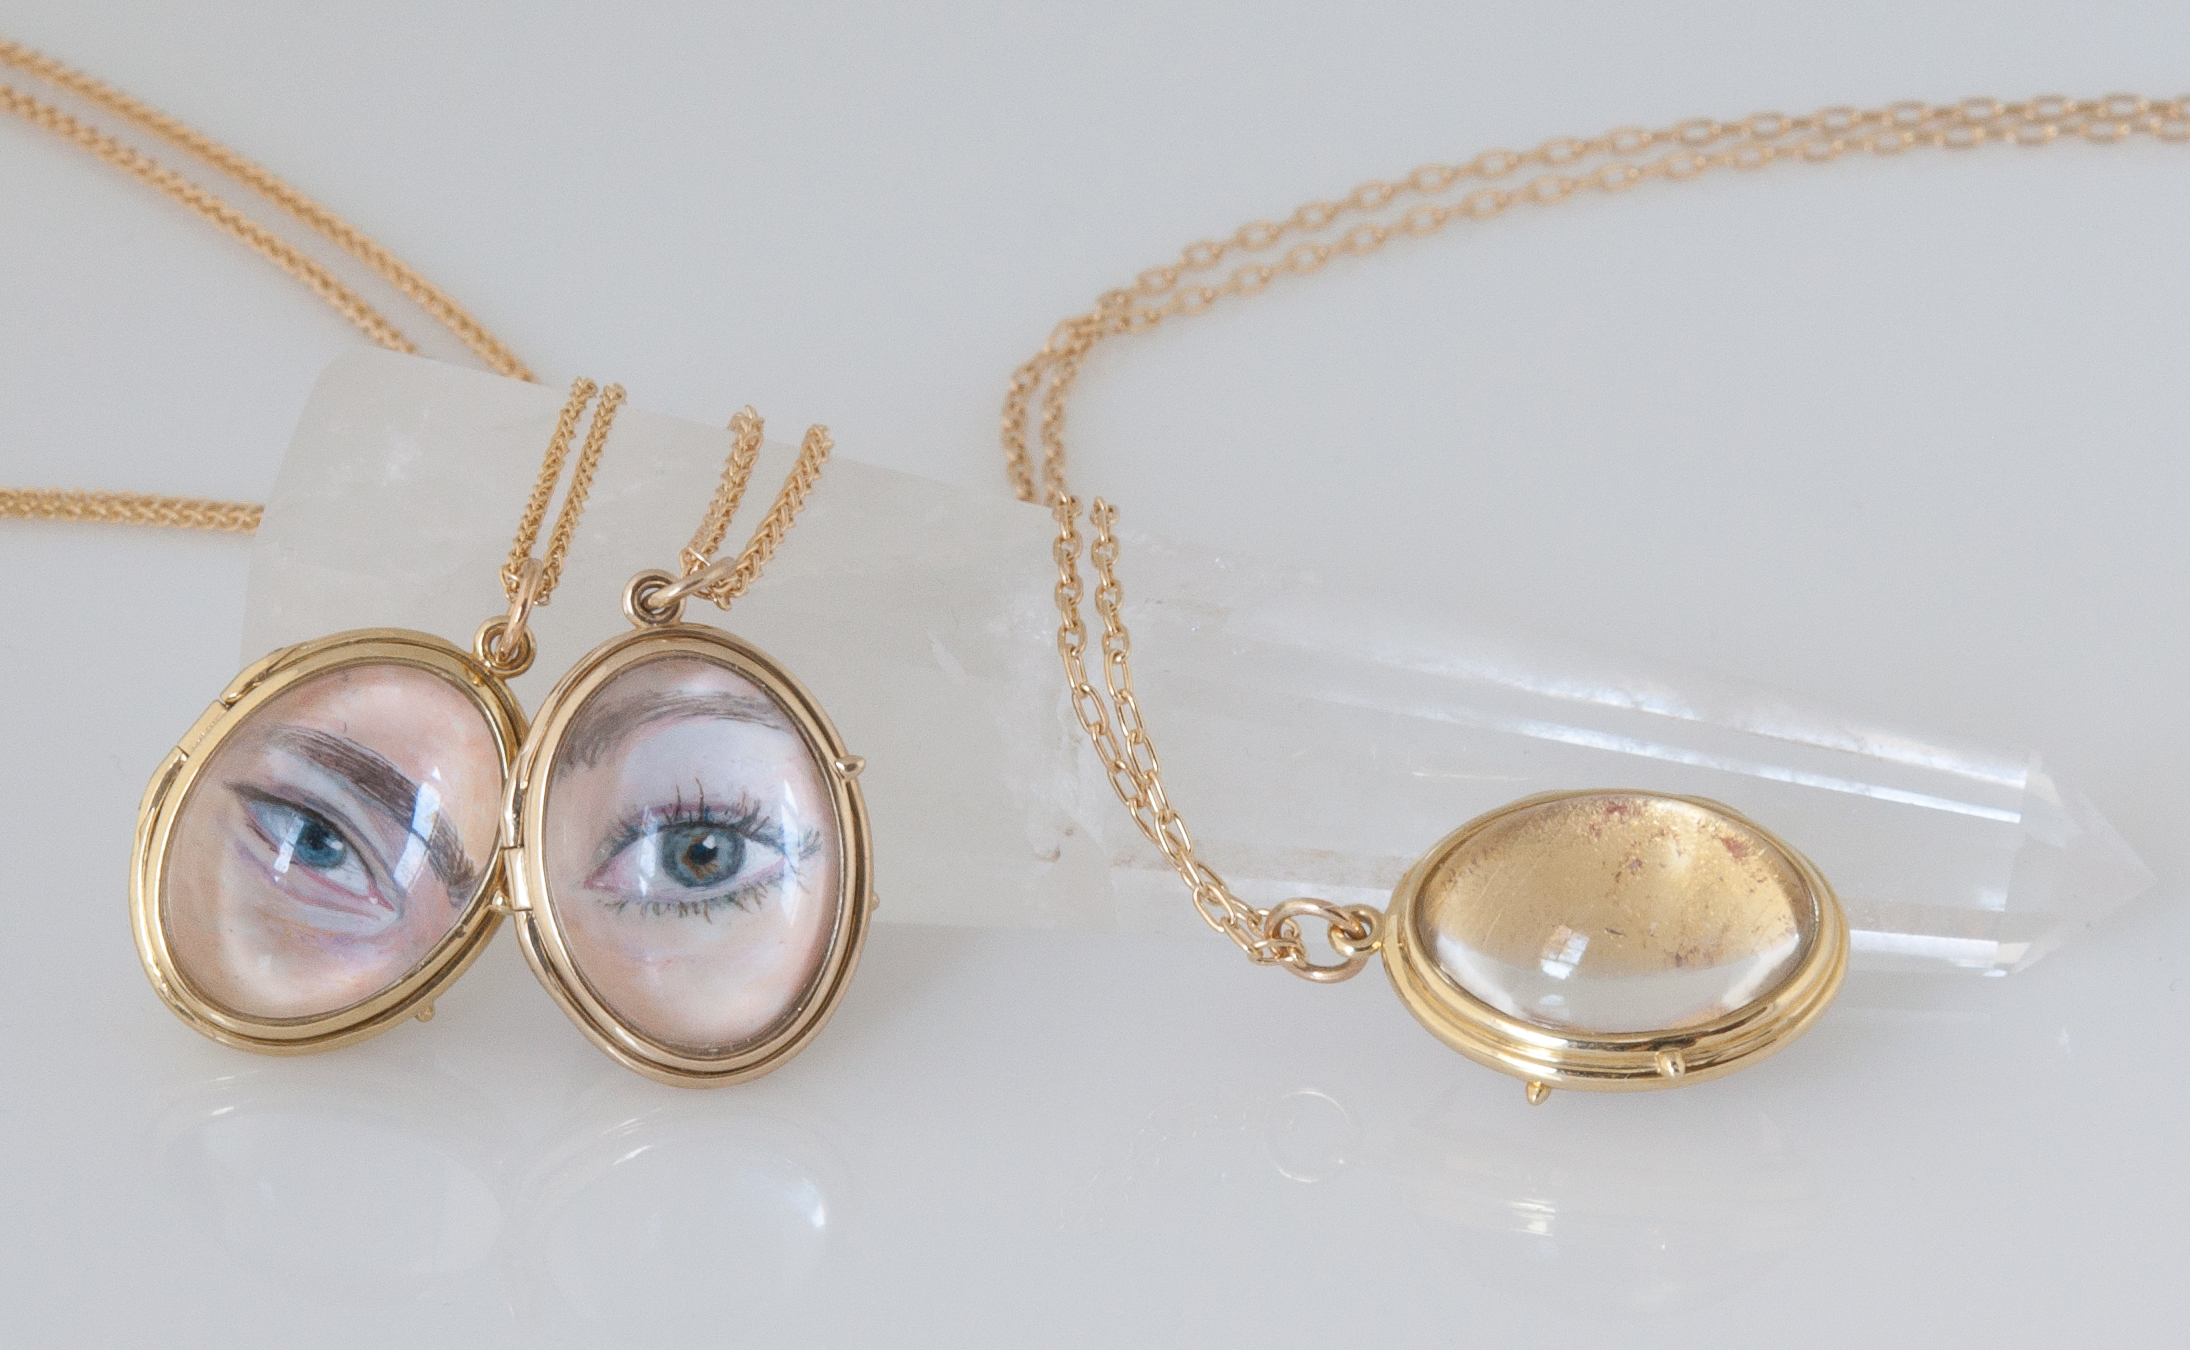 Lover's eye lockets